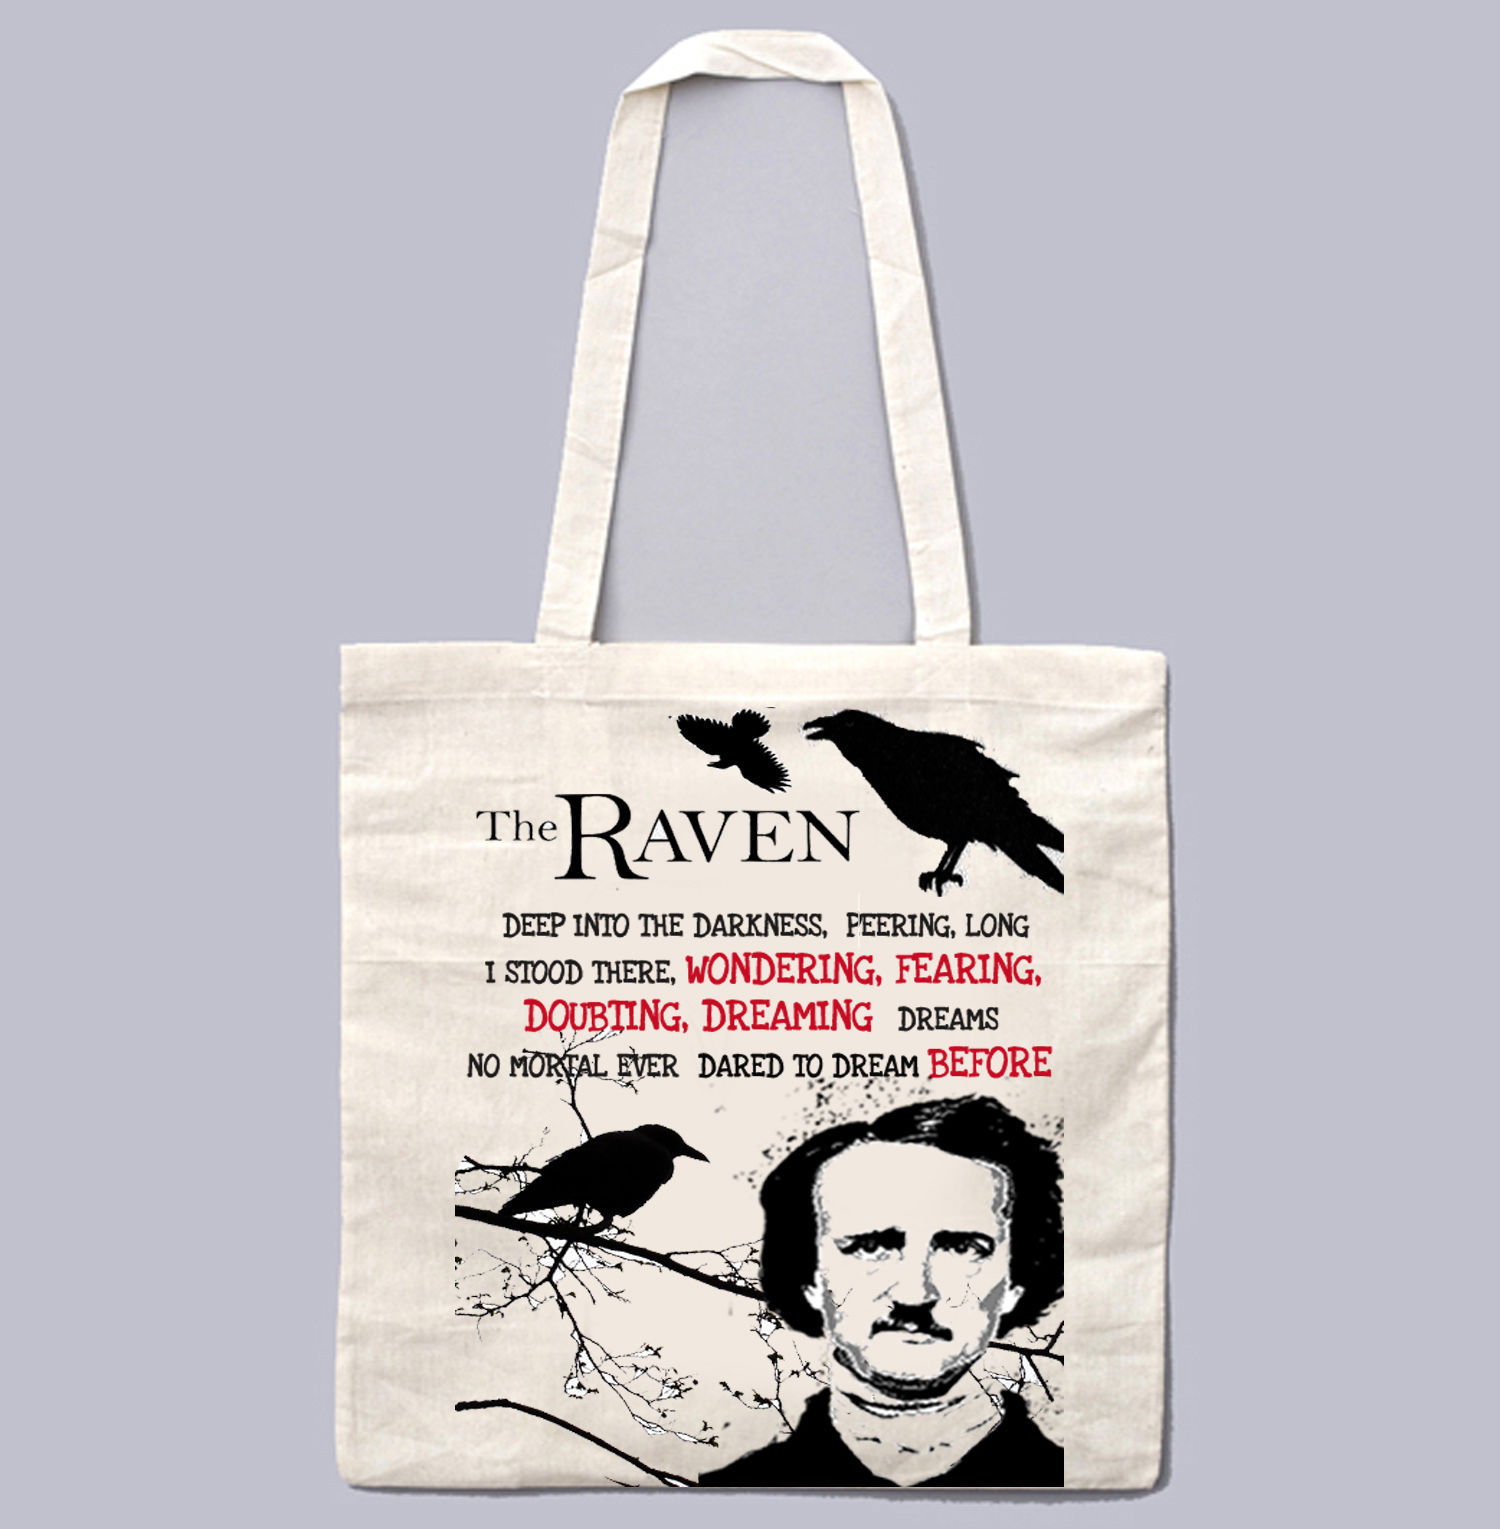 EDGAR ALAN POE TO THE RAVEN 1 - NEW AMAZING GRAPHIC WHITE HAND BAG/TOTE BAG